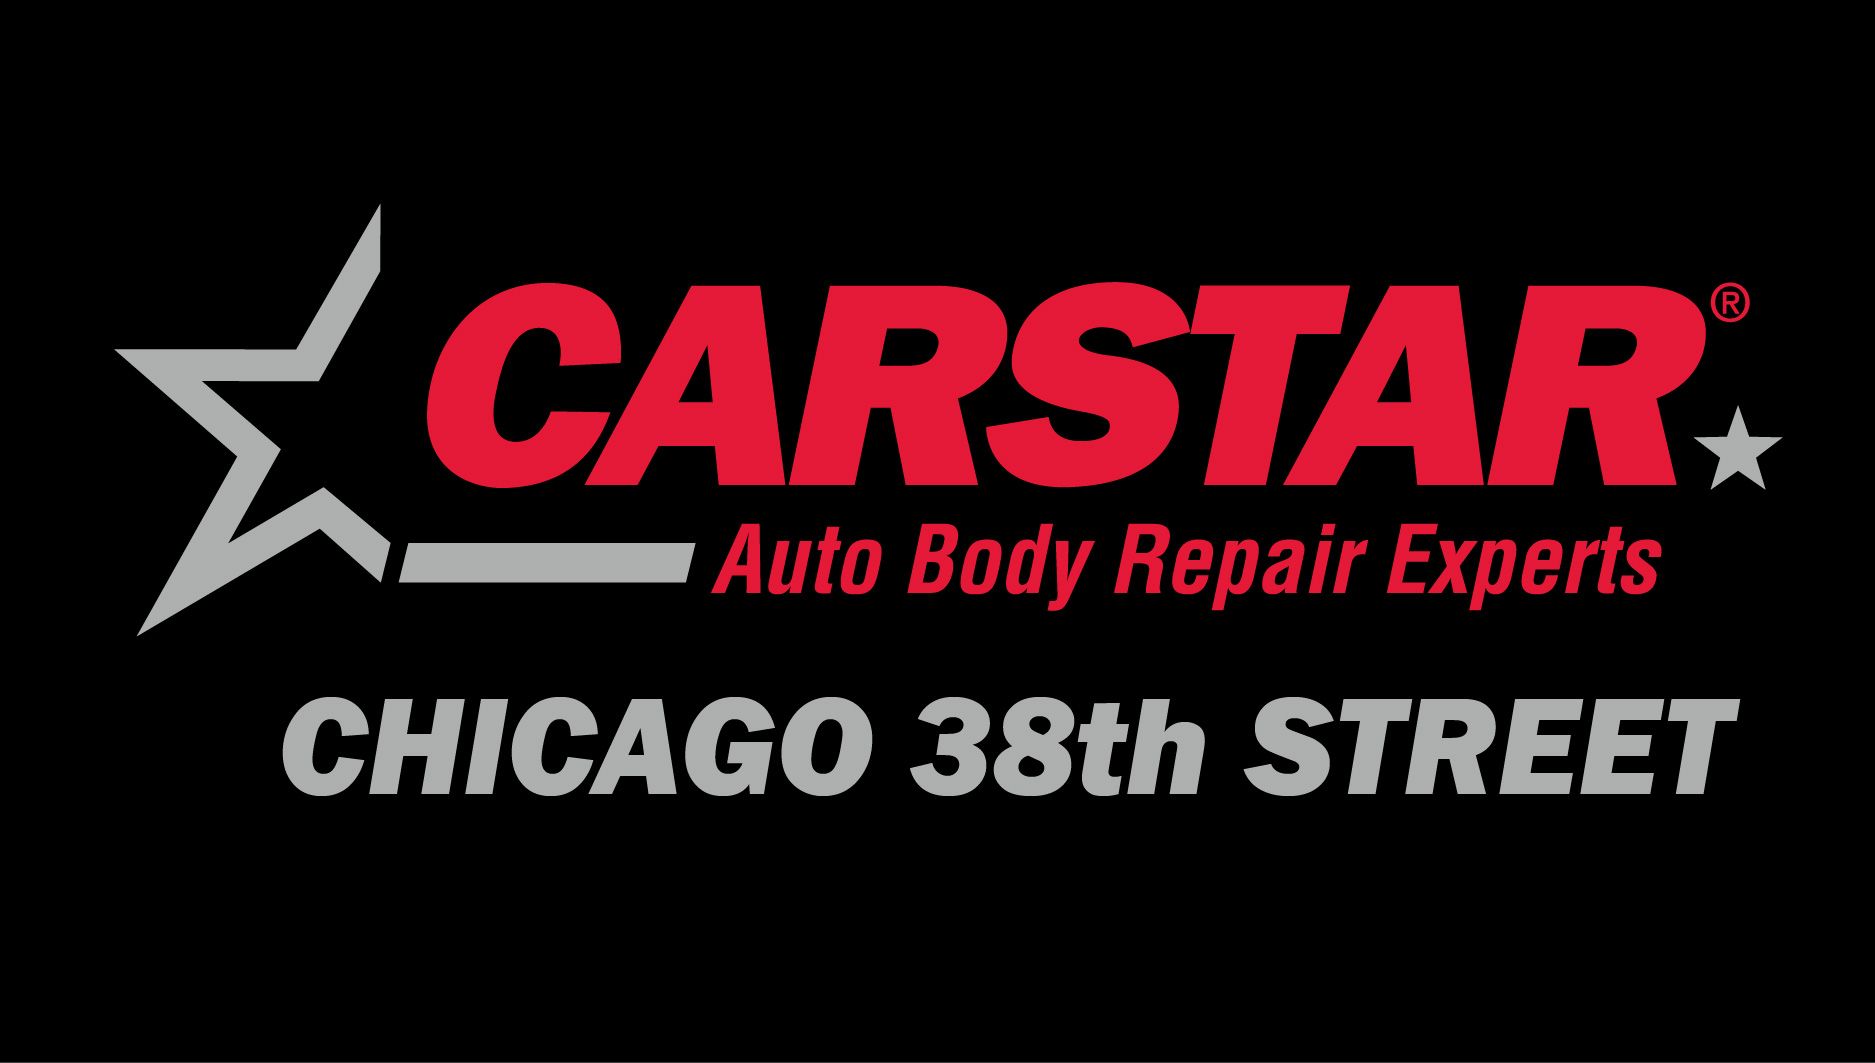 CARSTAR Chicago 38th Street